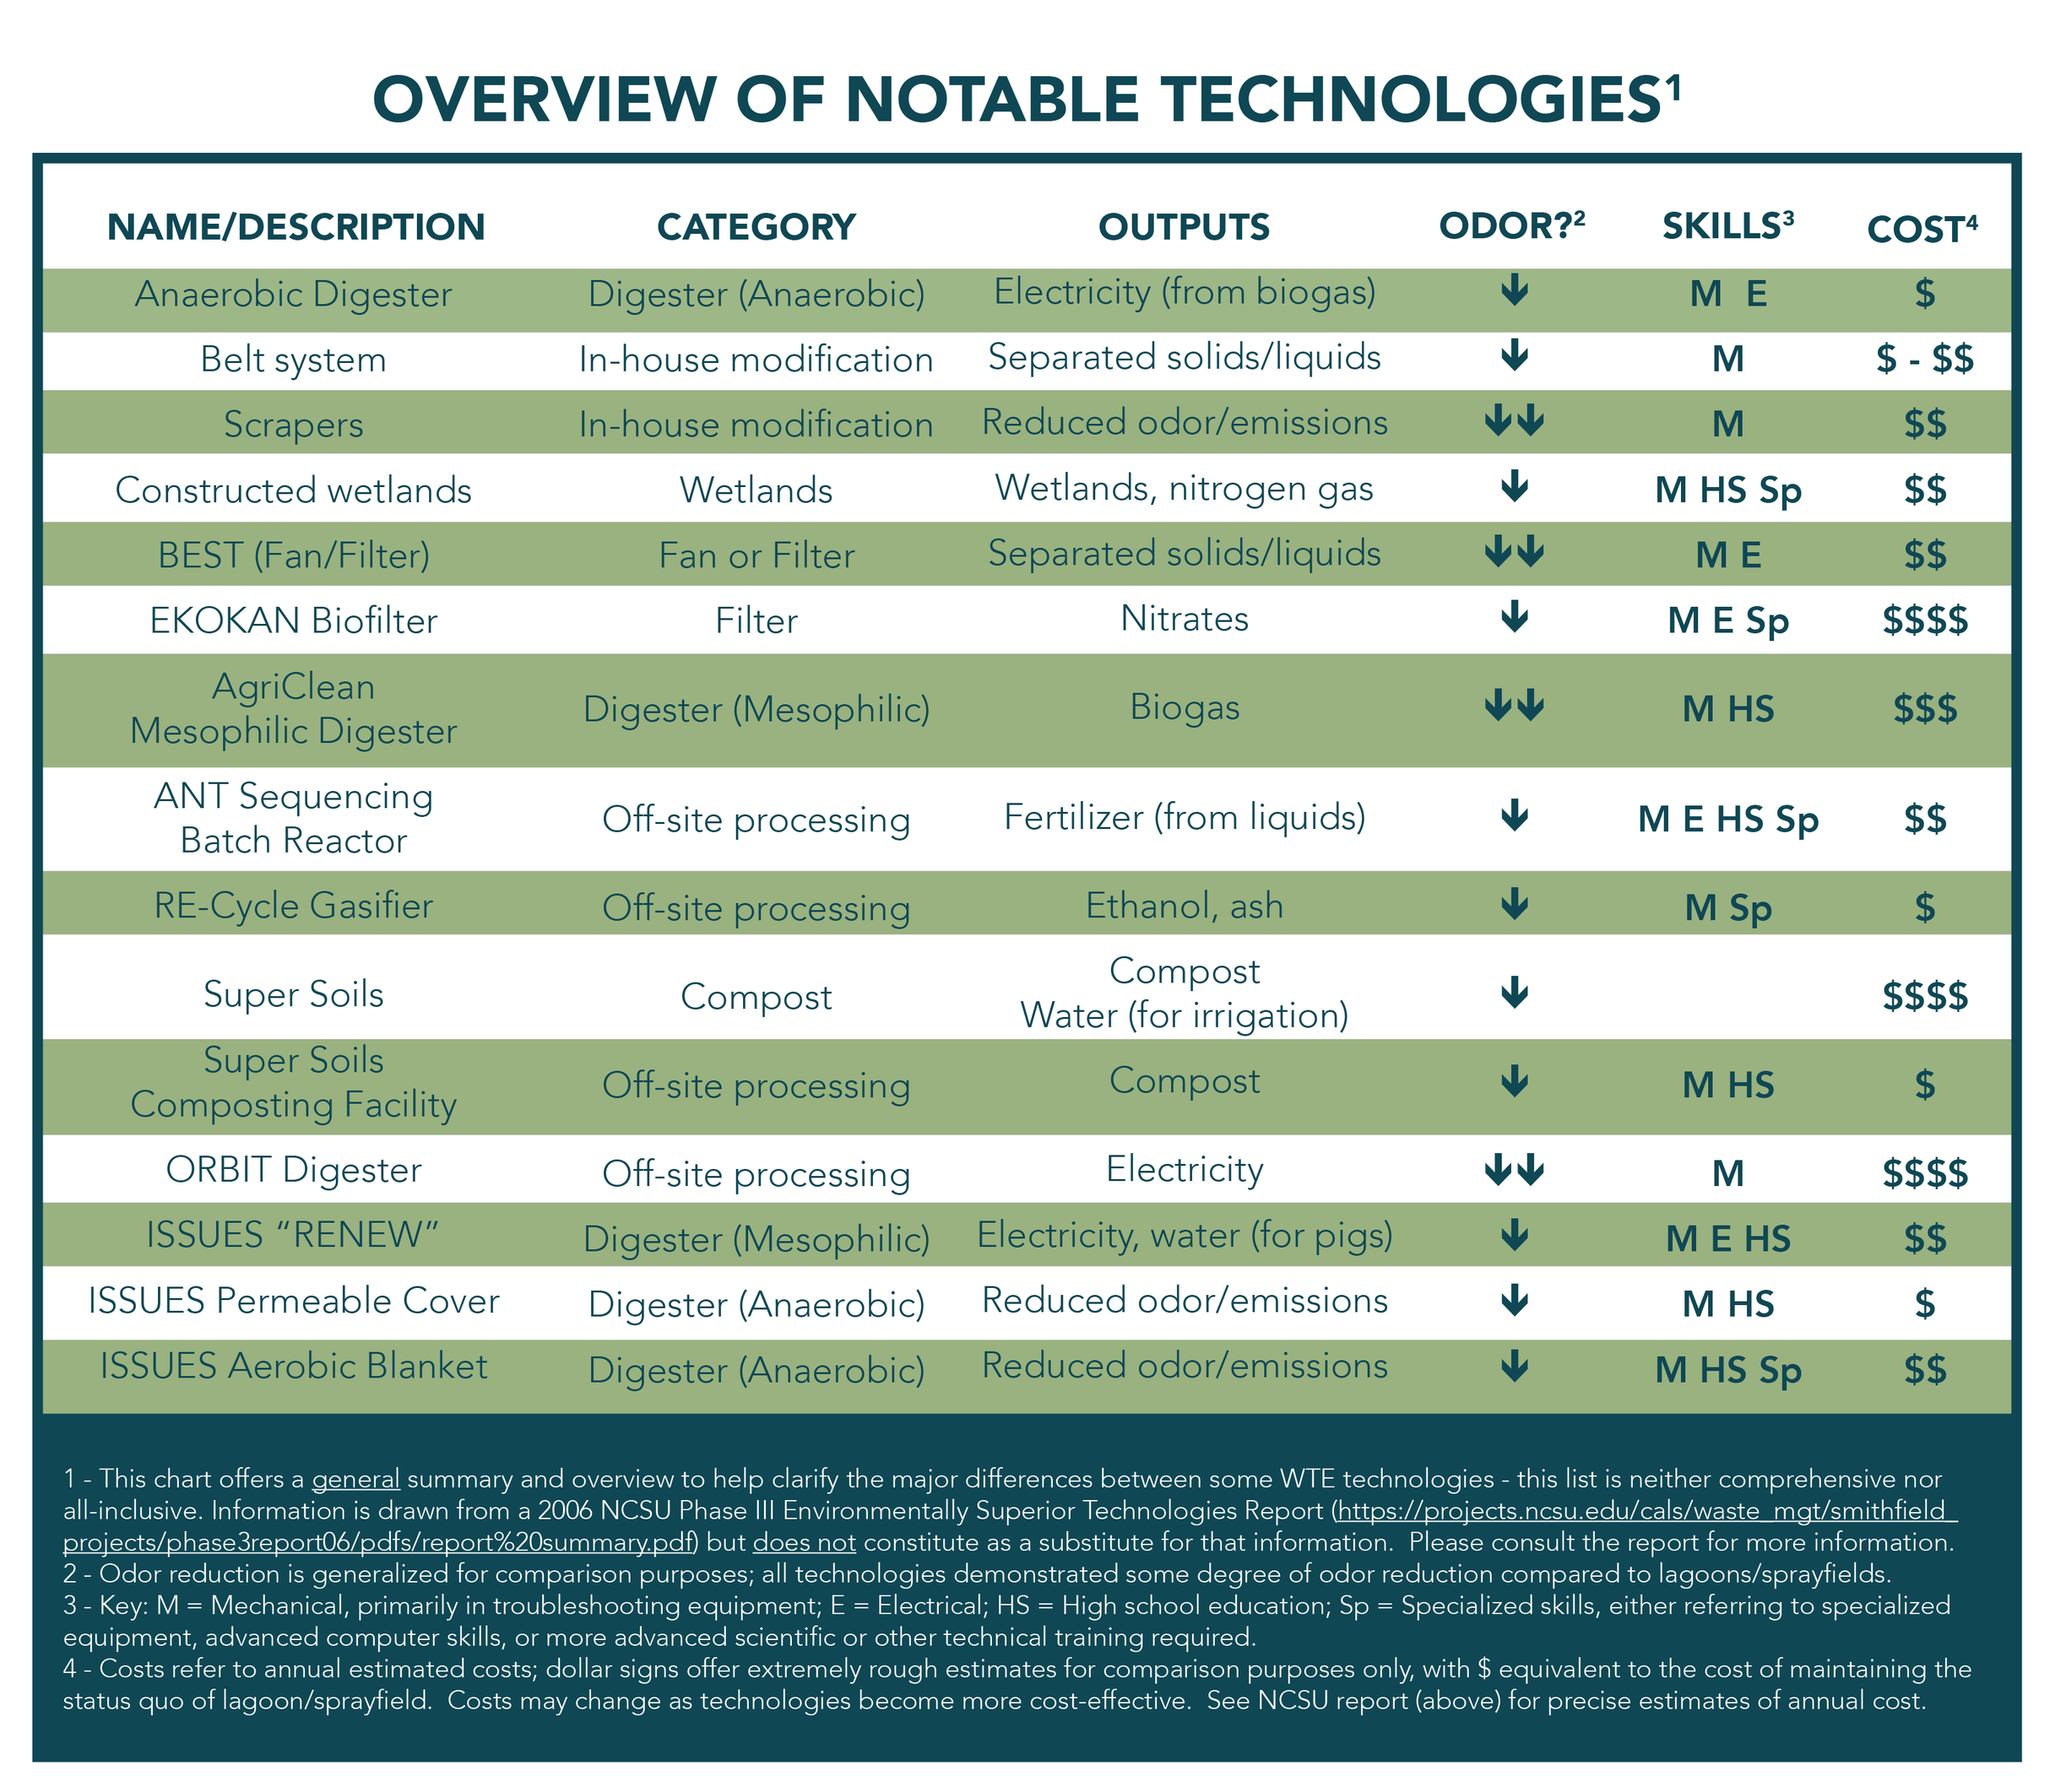 1 - This chart offers a general summary and overview to help clarify the major differences between some WTE technologies - this list is neither comprehensive nor all-inclusive. Information is drawn from a 2006 NCSU  Phase III Technology Determinations Report  but does not constitute as a substitute for that information.  Please consult the report for more information. 2 - Odor reduction is generalized for comparison purposes; all technologies demonstrated some degree of odor reduction compared to lagoons/sprayfields. 3 - Key: M = Mechanical, primarily in troubleshooting equipment; E = Electrical; HS = High school education; Sp = Specialized skills, either referring to specialized equipment, advanced computer skills, or more advanced scientific or other technical training required. 4 - Costs refer to annual estimated costs; dollar signs offer extremely rough estimates for comparison purposes only, with $ equivalent to the cost of maintaining the status quo of lagoon/sprayfield.  Costs may change as technologies become more cost-effective.  See NCSU report (above) for precise estimates of annual cost.